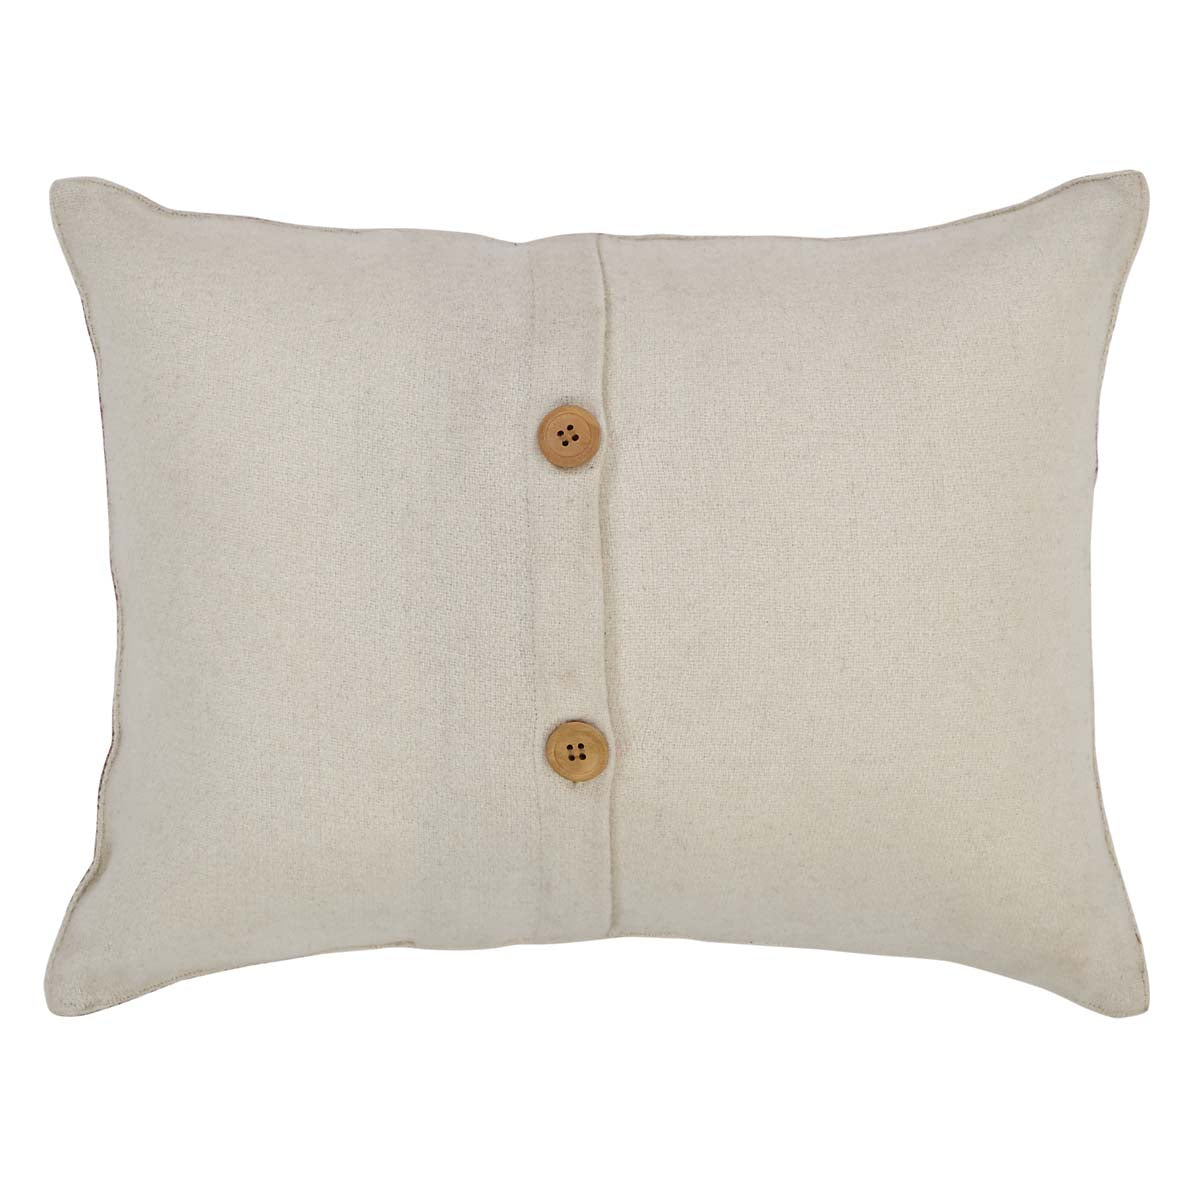 Let It Snow Pillow 14x18 - Woodrol